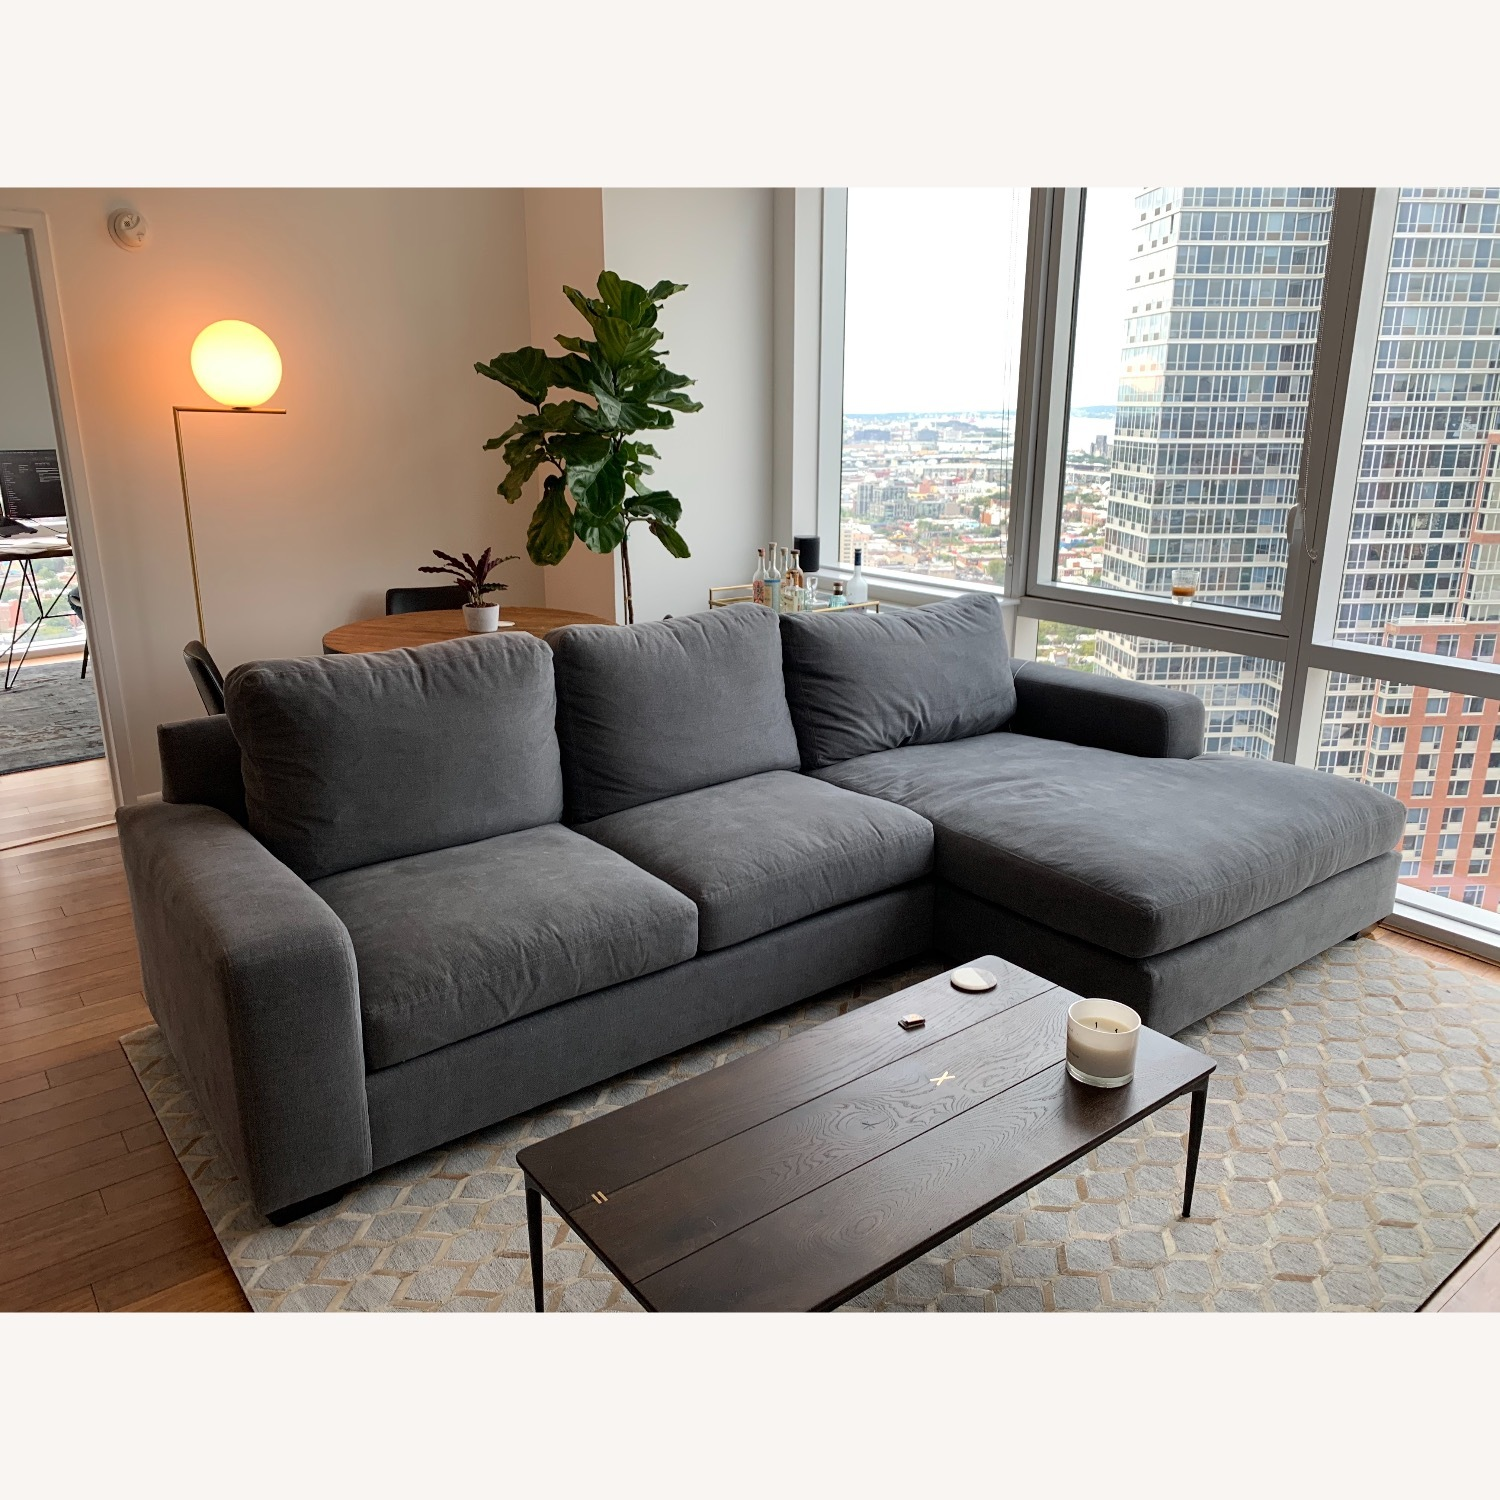 Pottery Barn Custom Couch - image-1